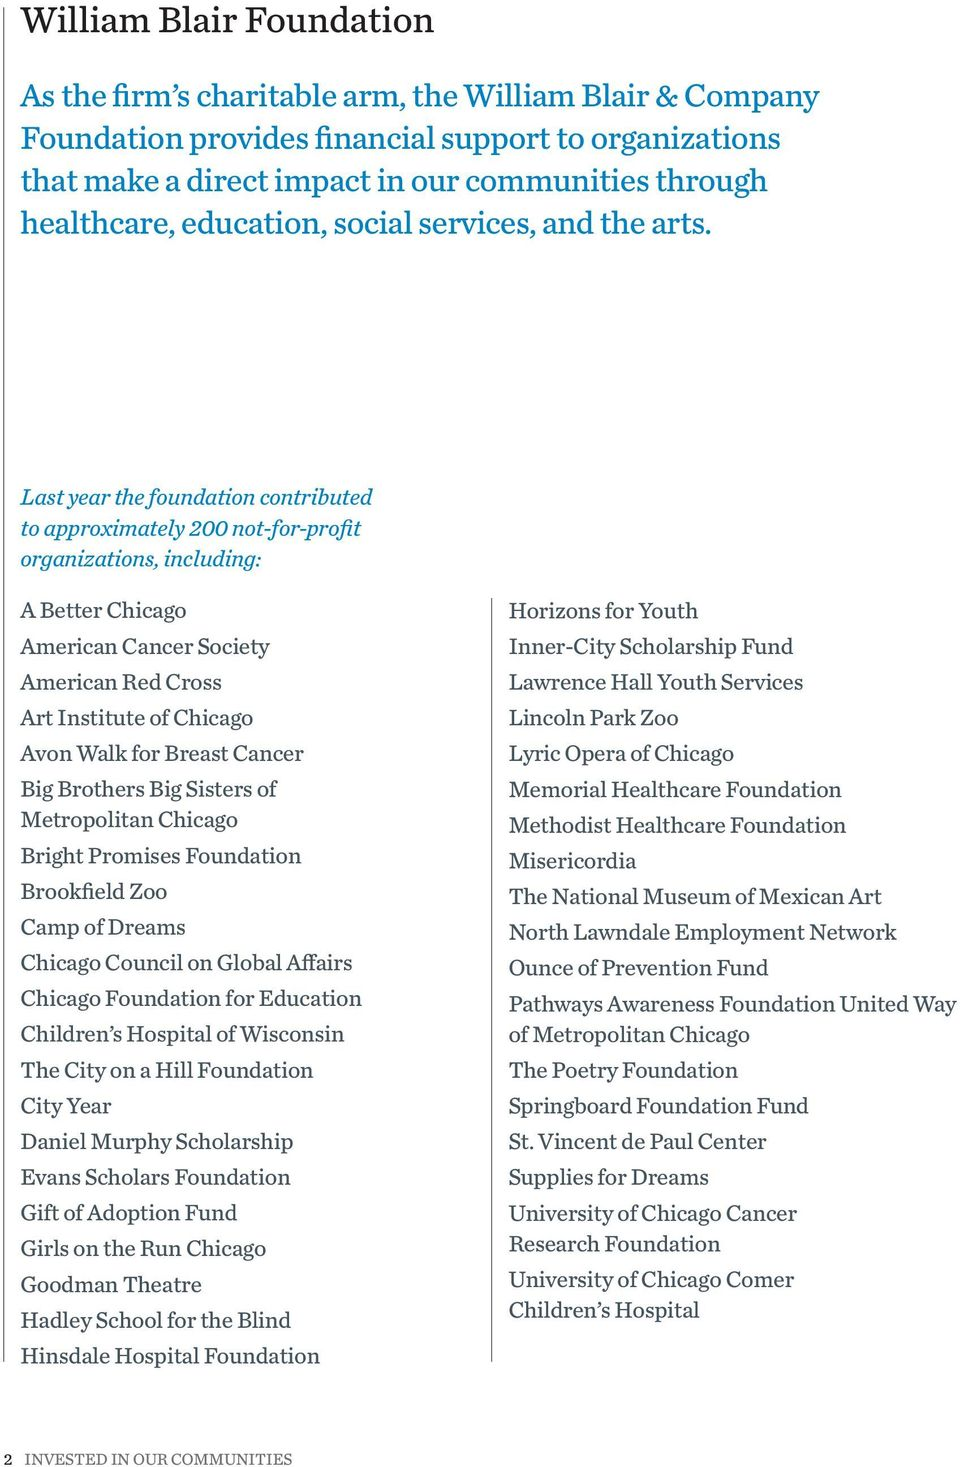 Last year the foundation contributed to approximately 200 not-for-profit organizations, including: A Better Chicago American Cancer Society American Red Cross Art Institute of Chicago Avon Walk for